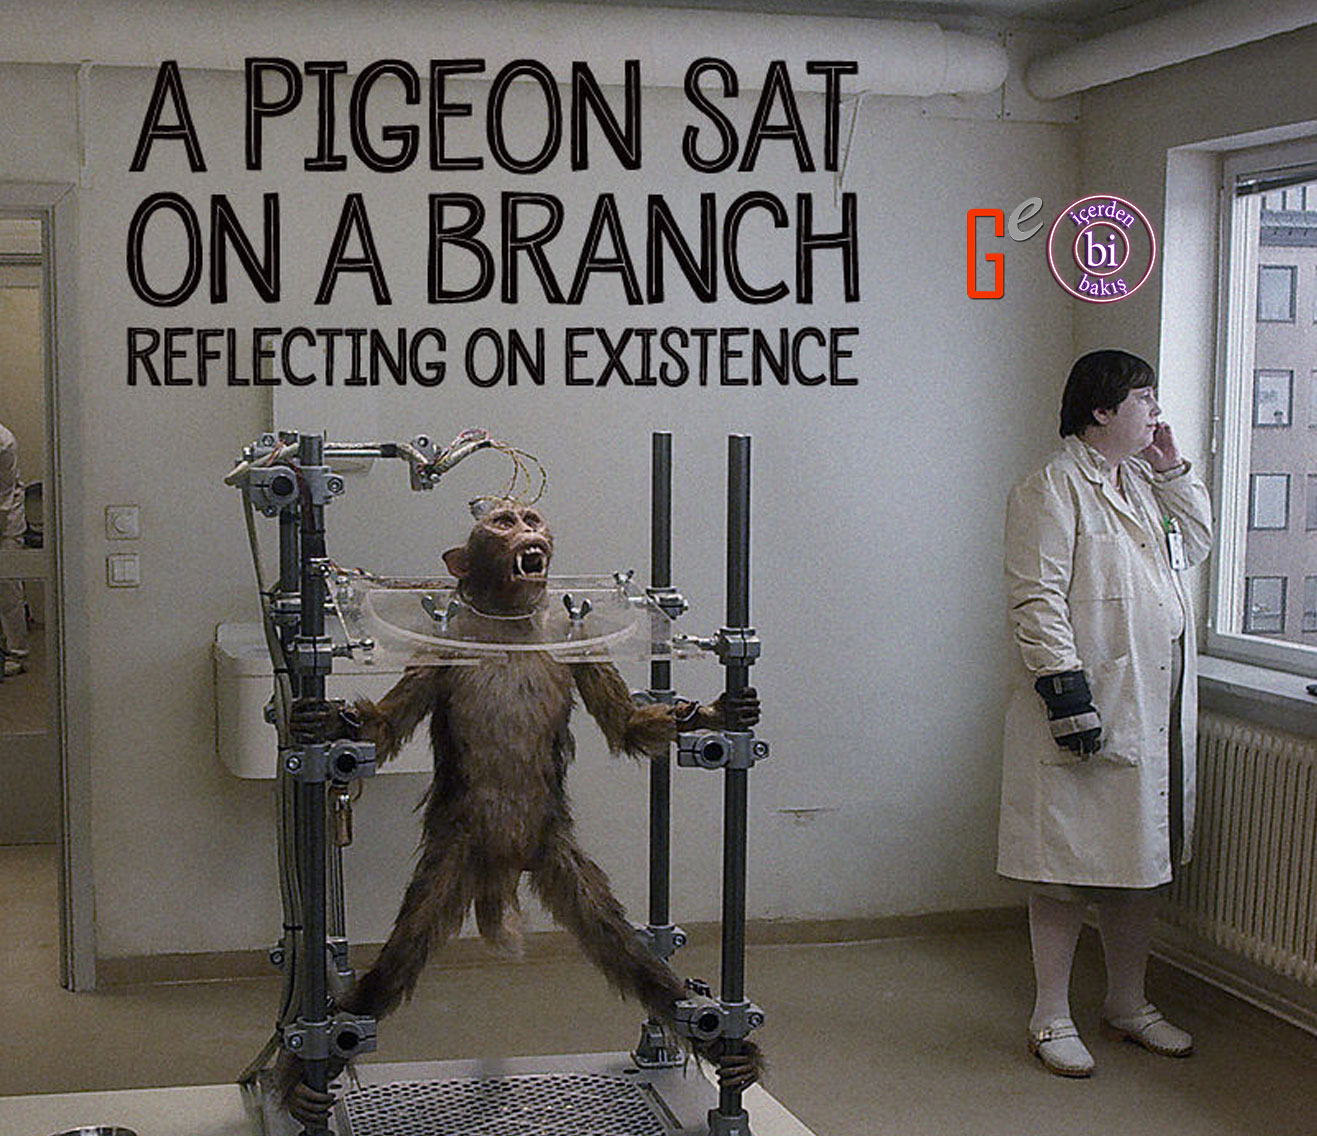 İçerden Bi Bakış – EP22 –  A Pigeon Sat on a Branch Reflecting on Existence